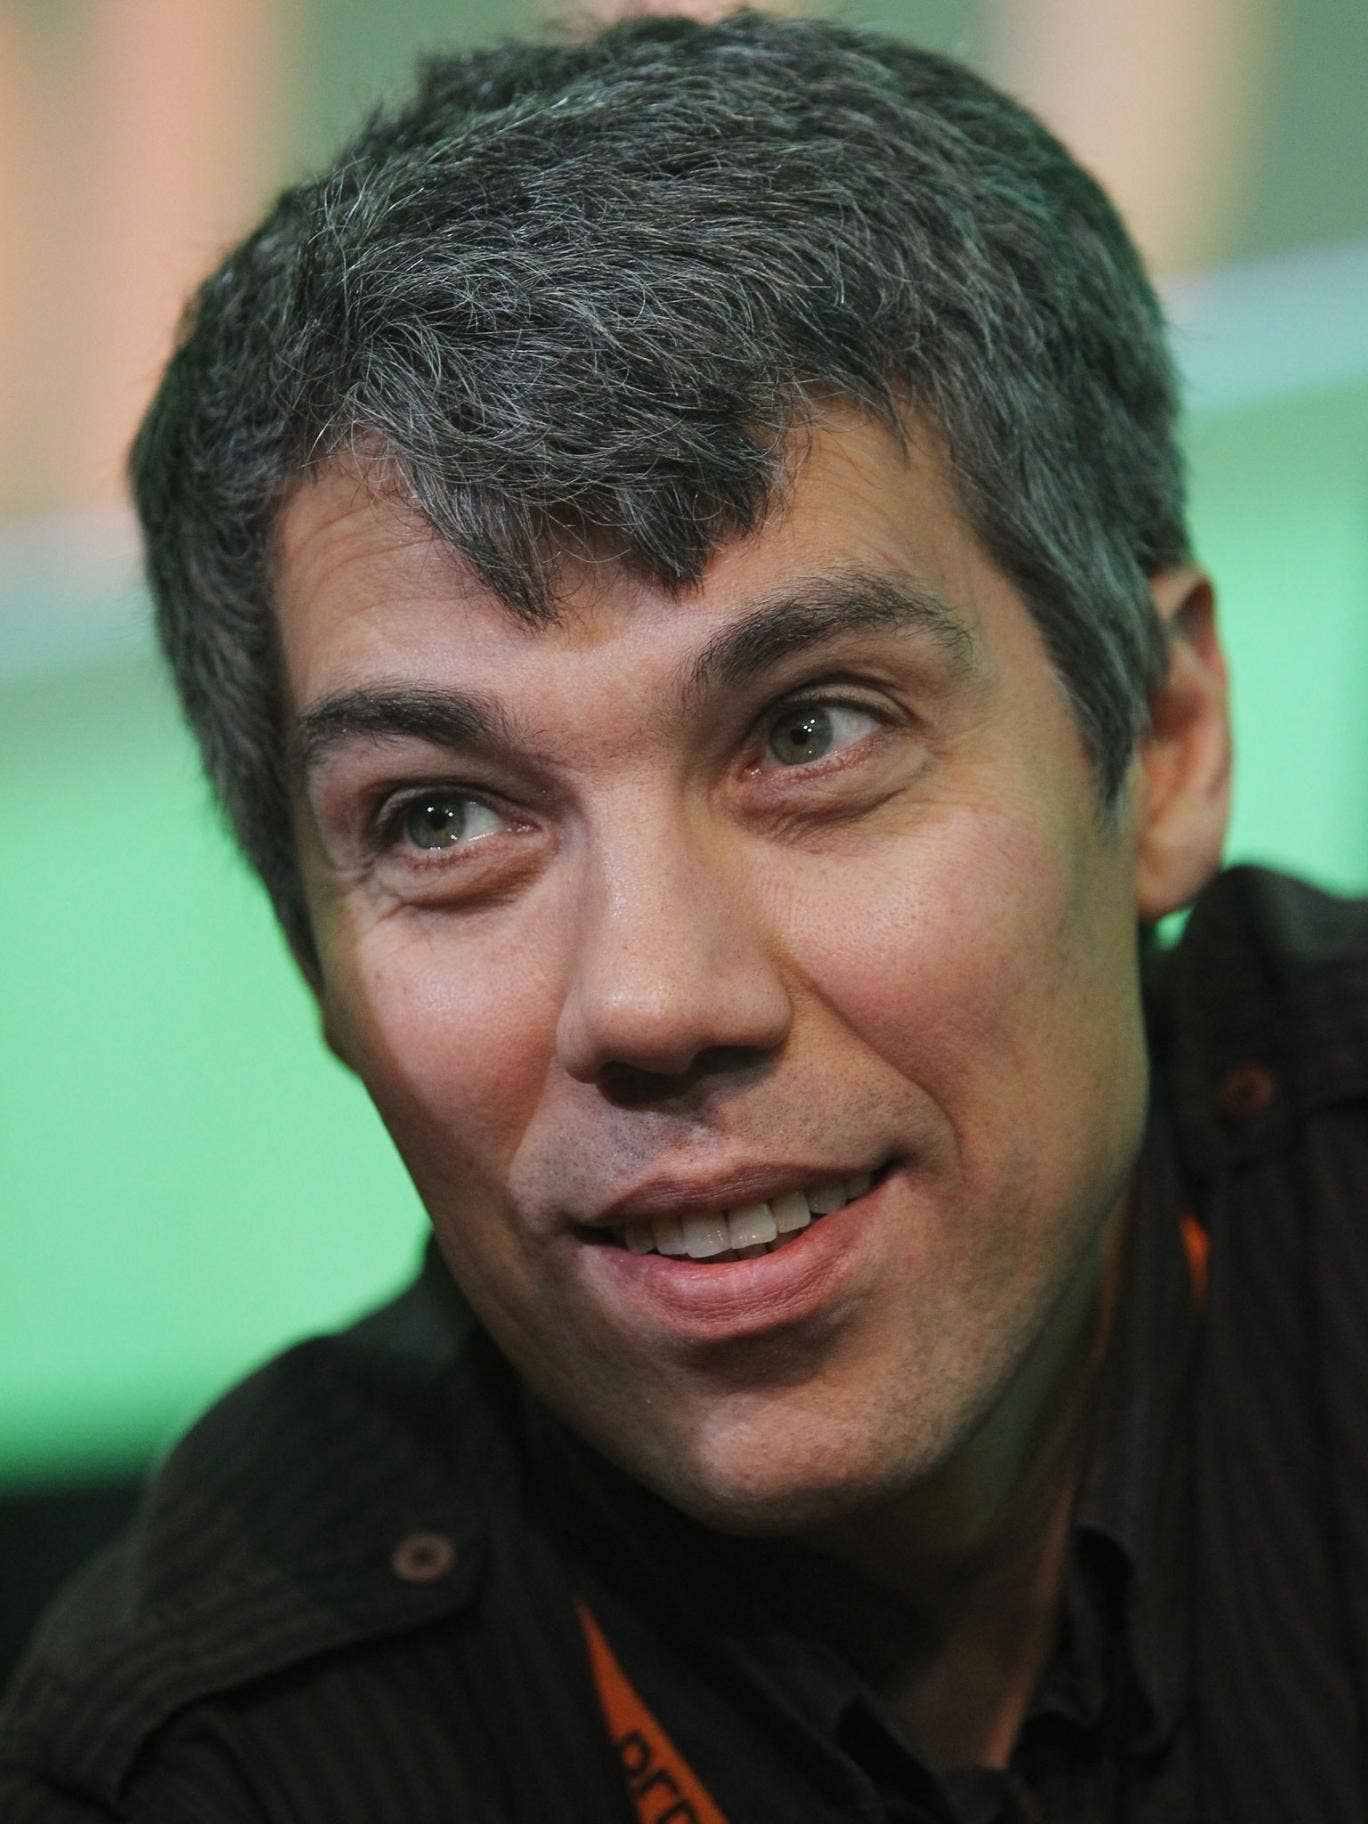 Ilya Segalovich was an internet pioneer and one of the founders of Yandex, the Russian search engine